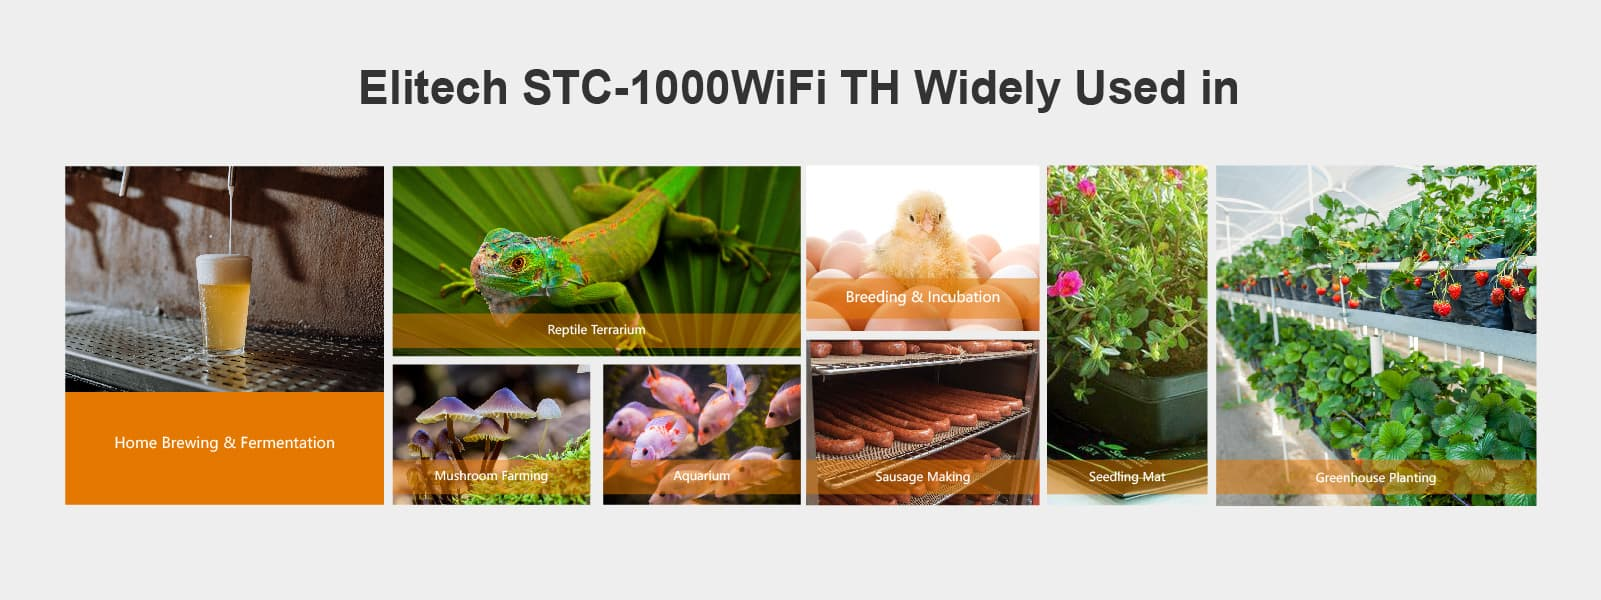 STC-1000WiFi TH Temperature and Humidity Controller Application - Elitech UK